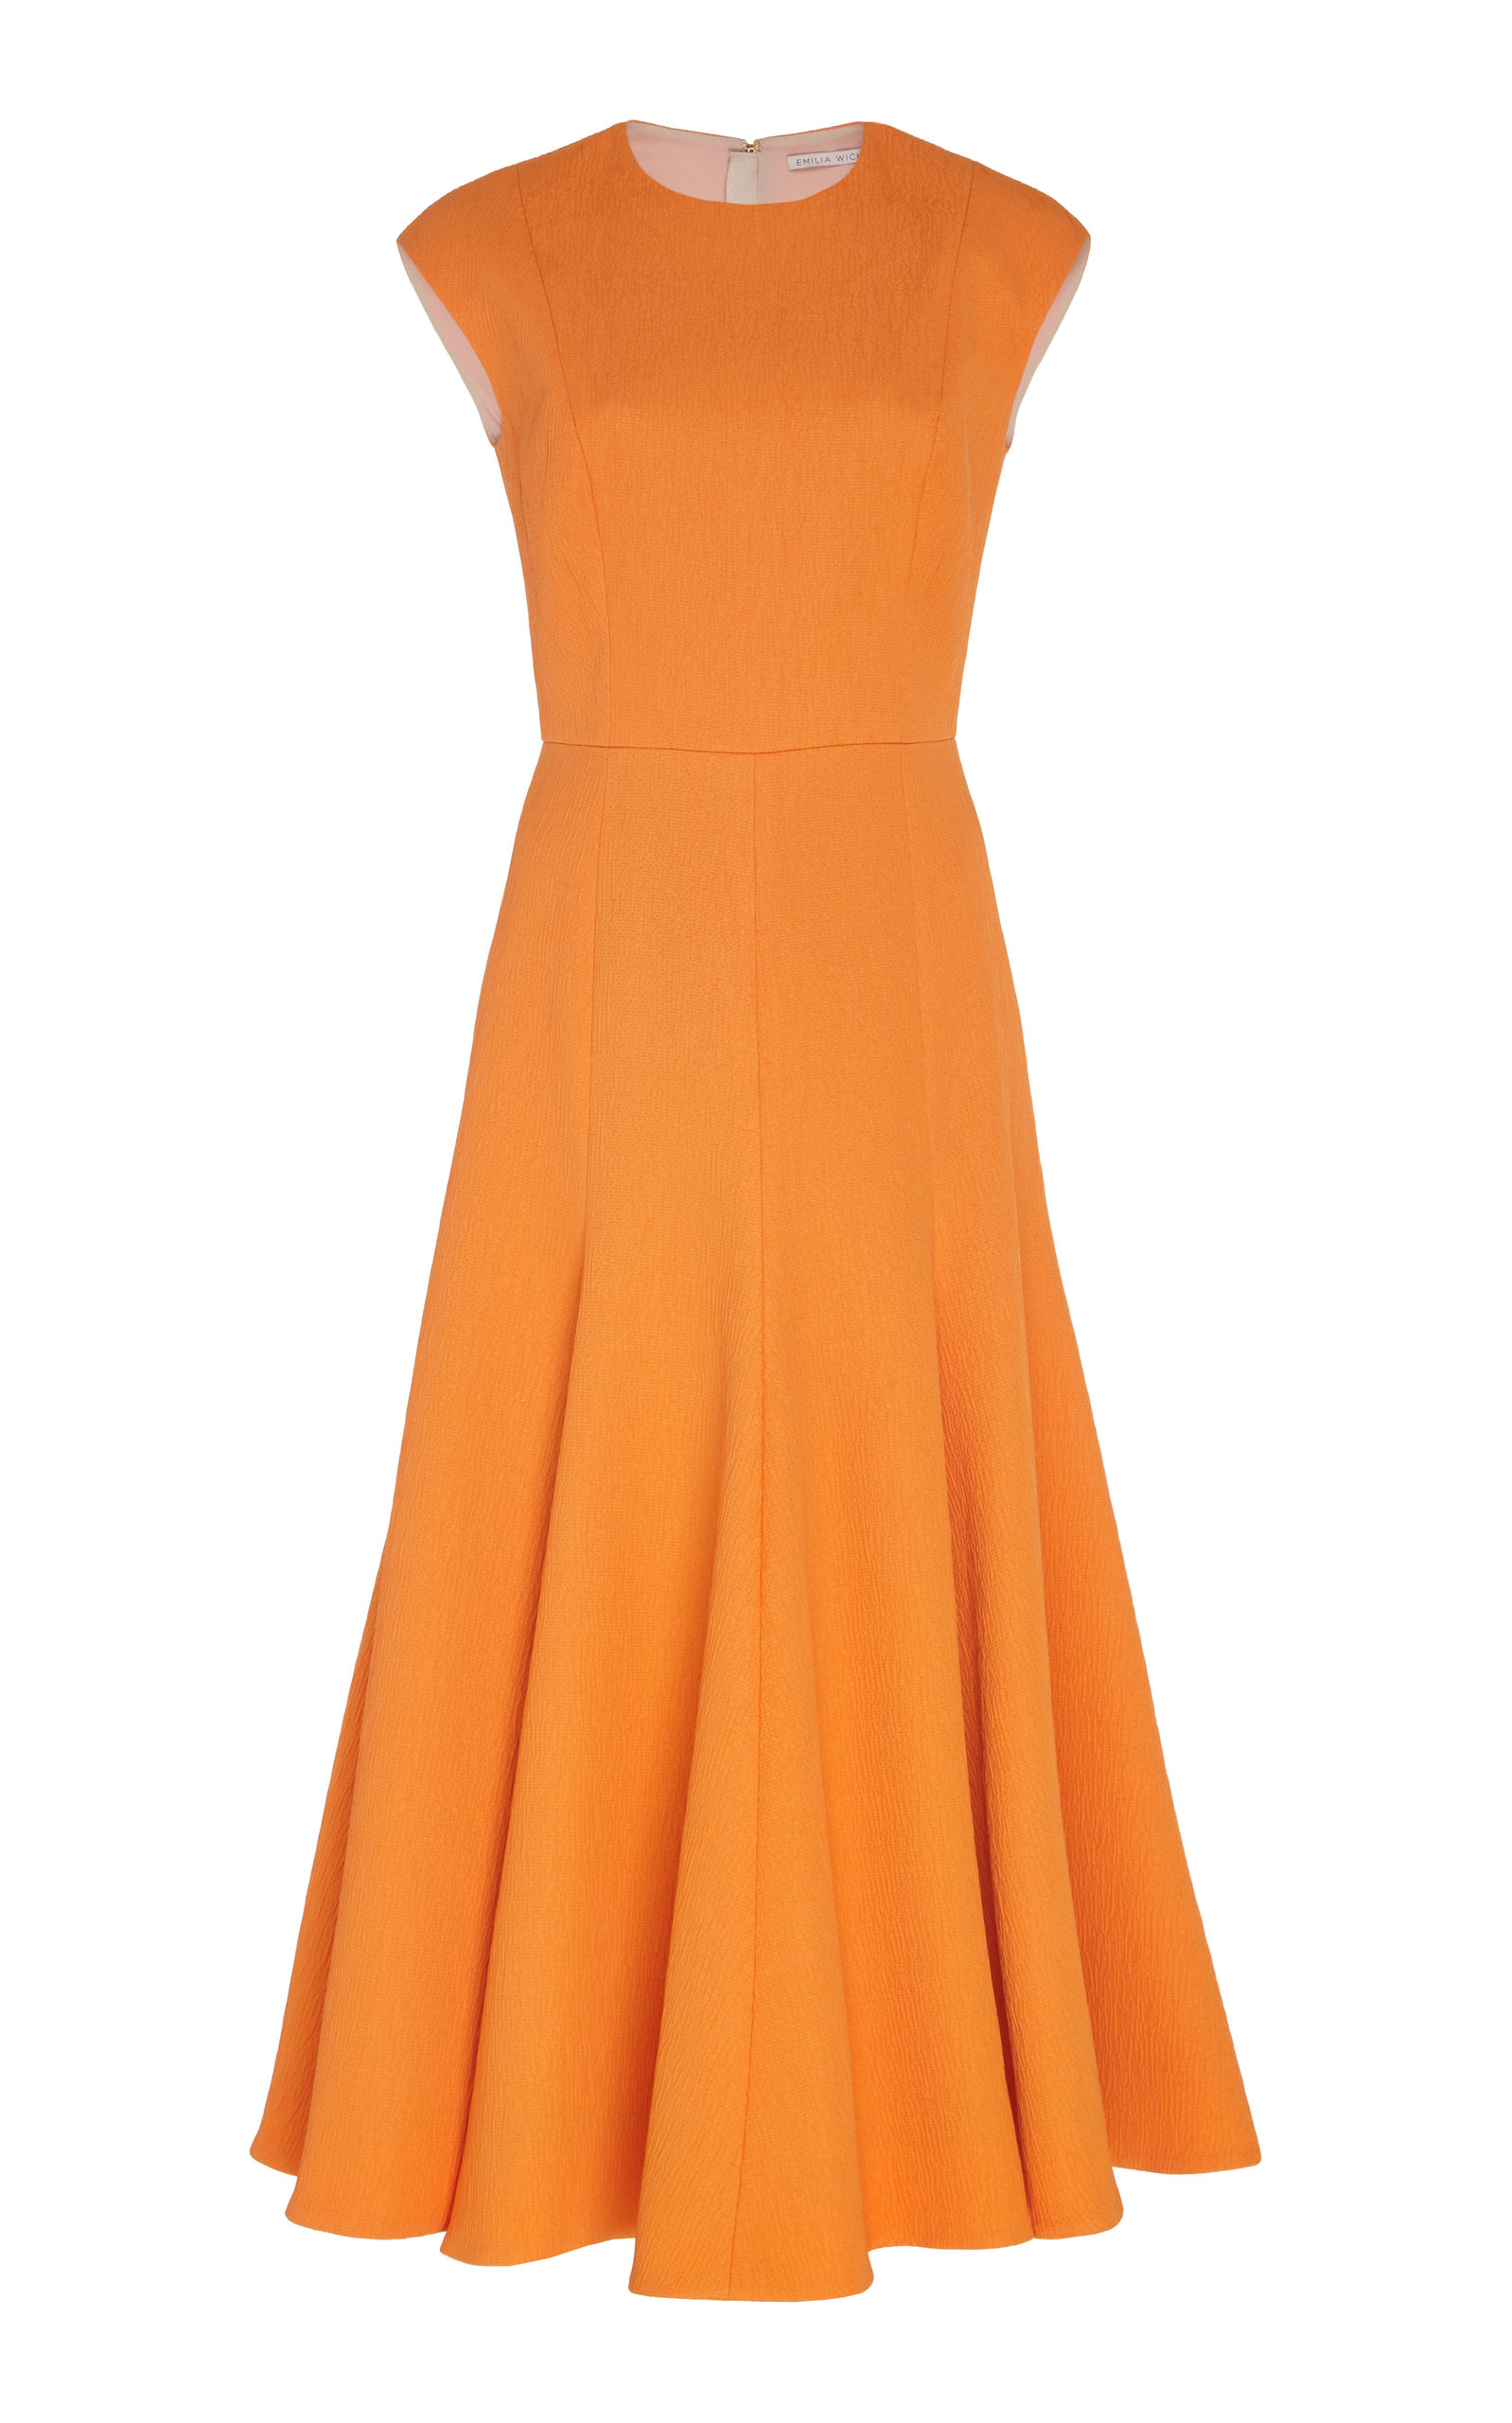 Buy Emilia Wickstead Pleated Crepe Dress online, shop Emilia Wickstead at the best price